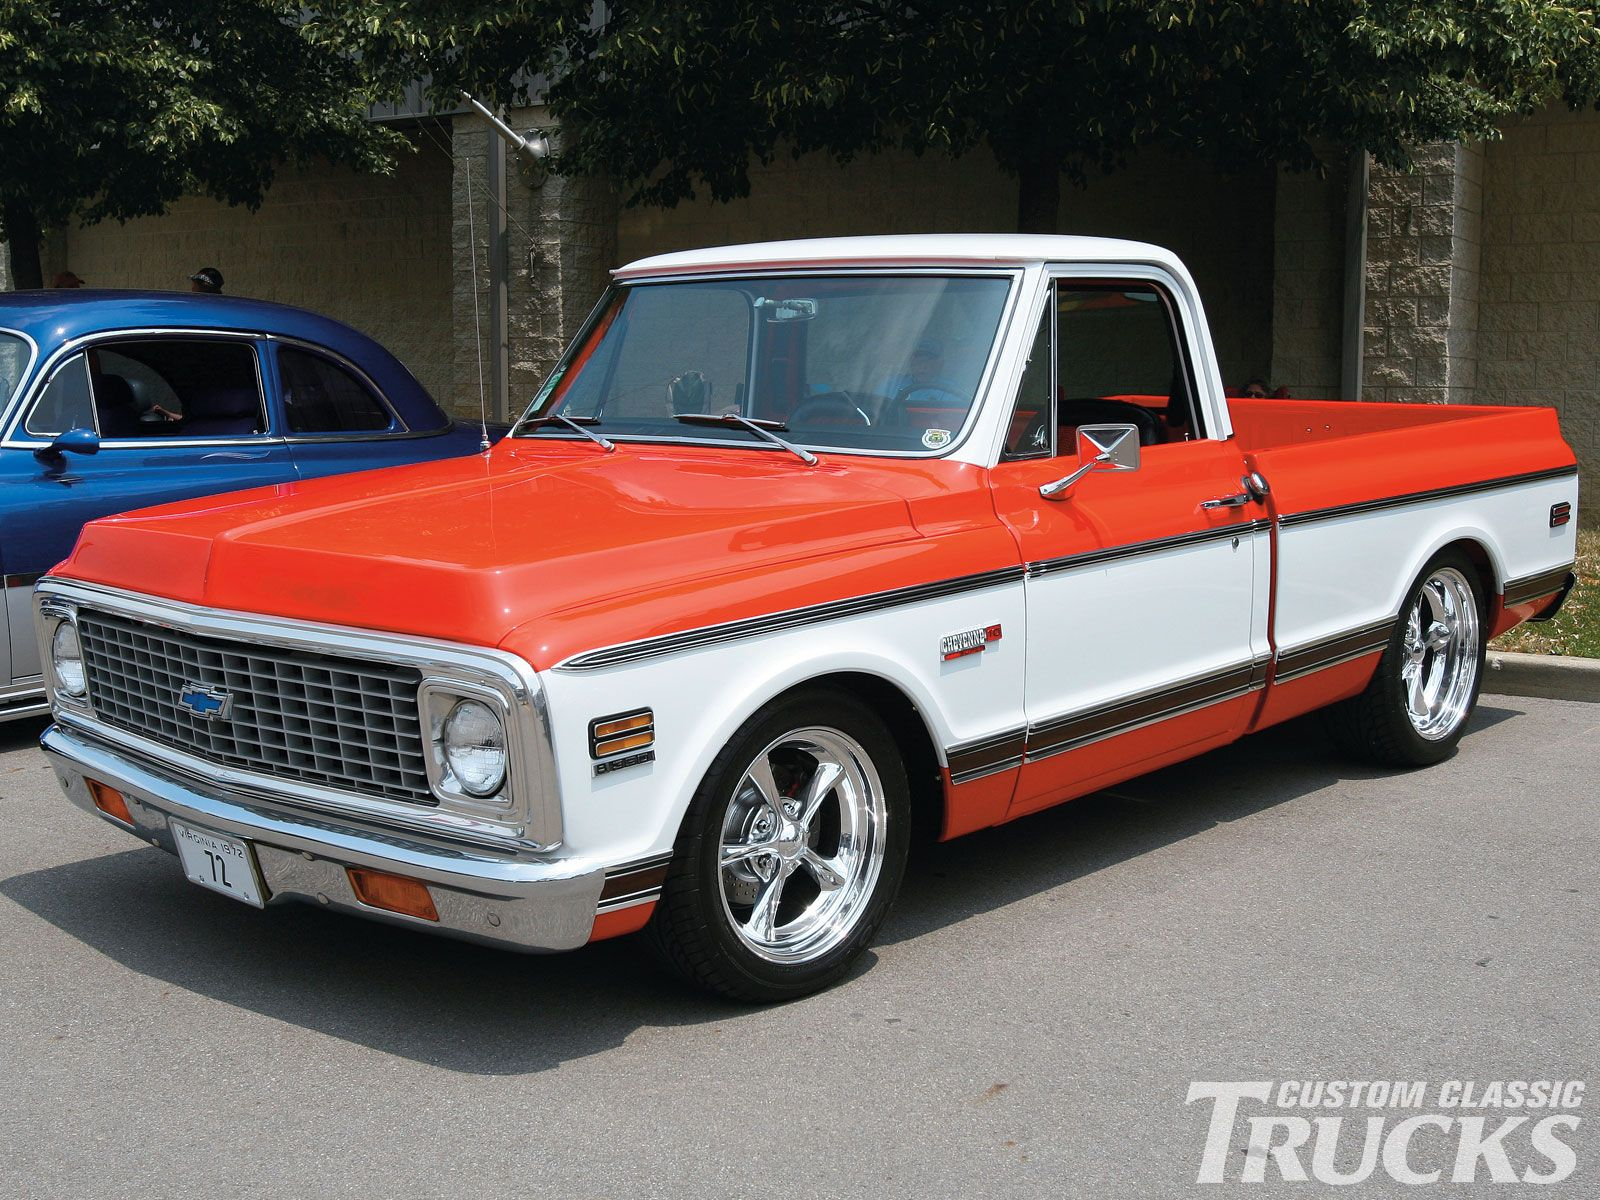 1972 Chevy Cheyenne The First Truck I Bought At 18 Except